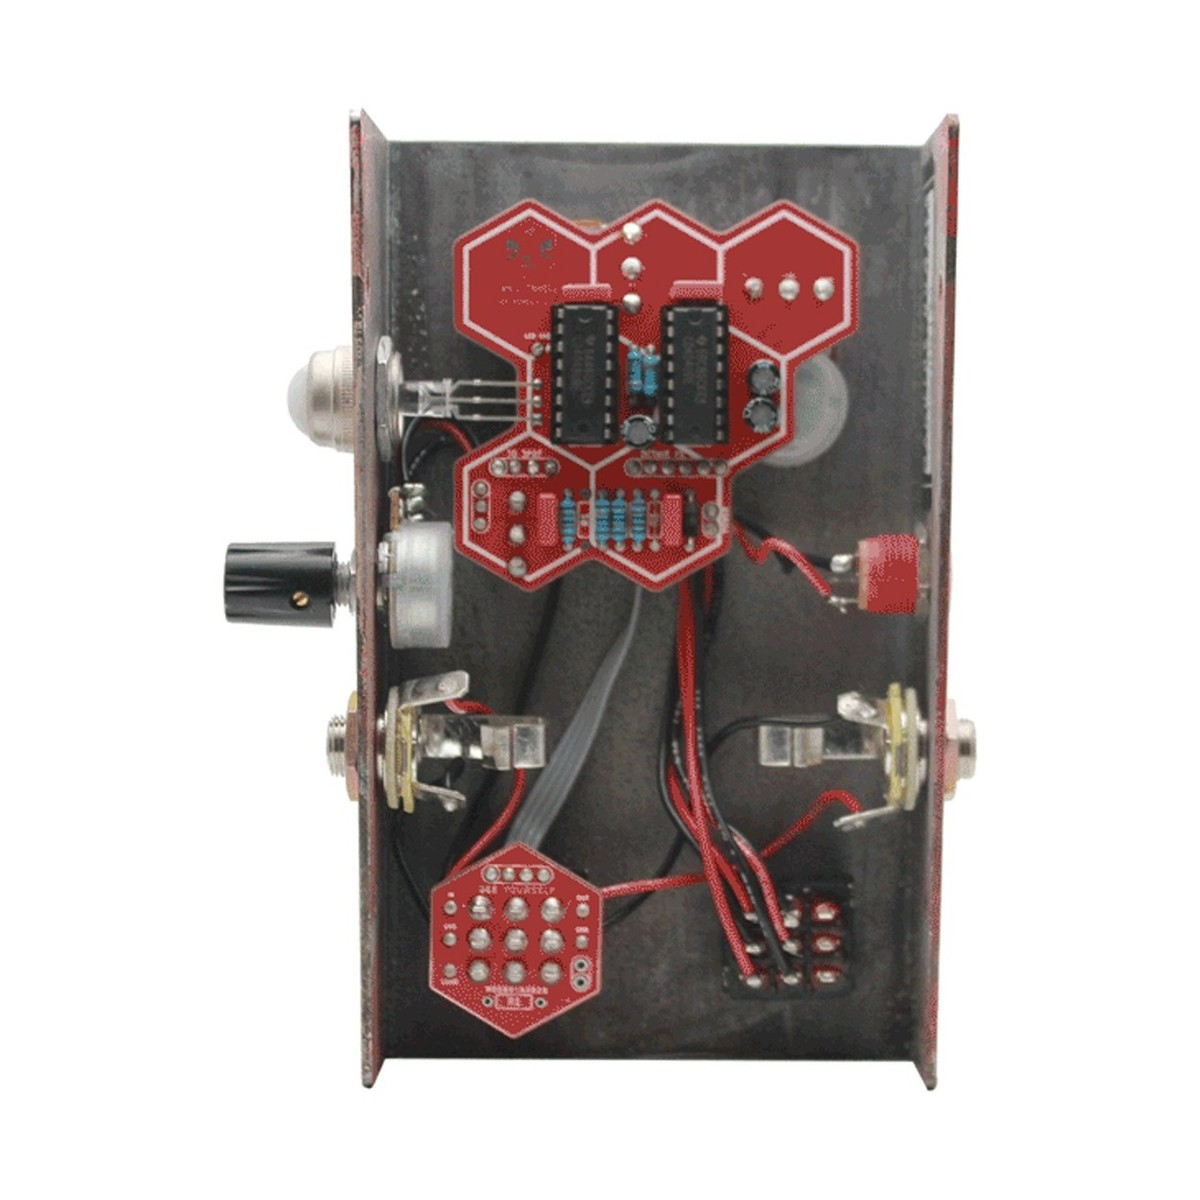 Beetronics FX Whoctahell Low Octave Fuzz bei Gear4music